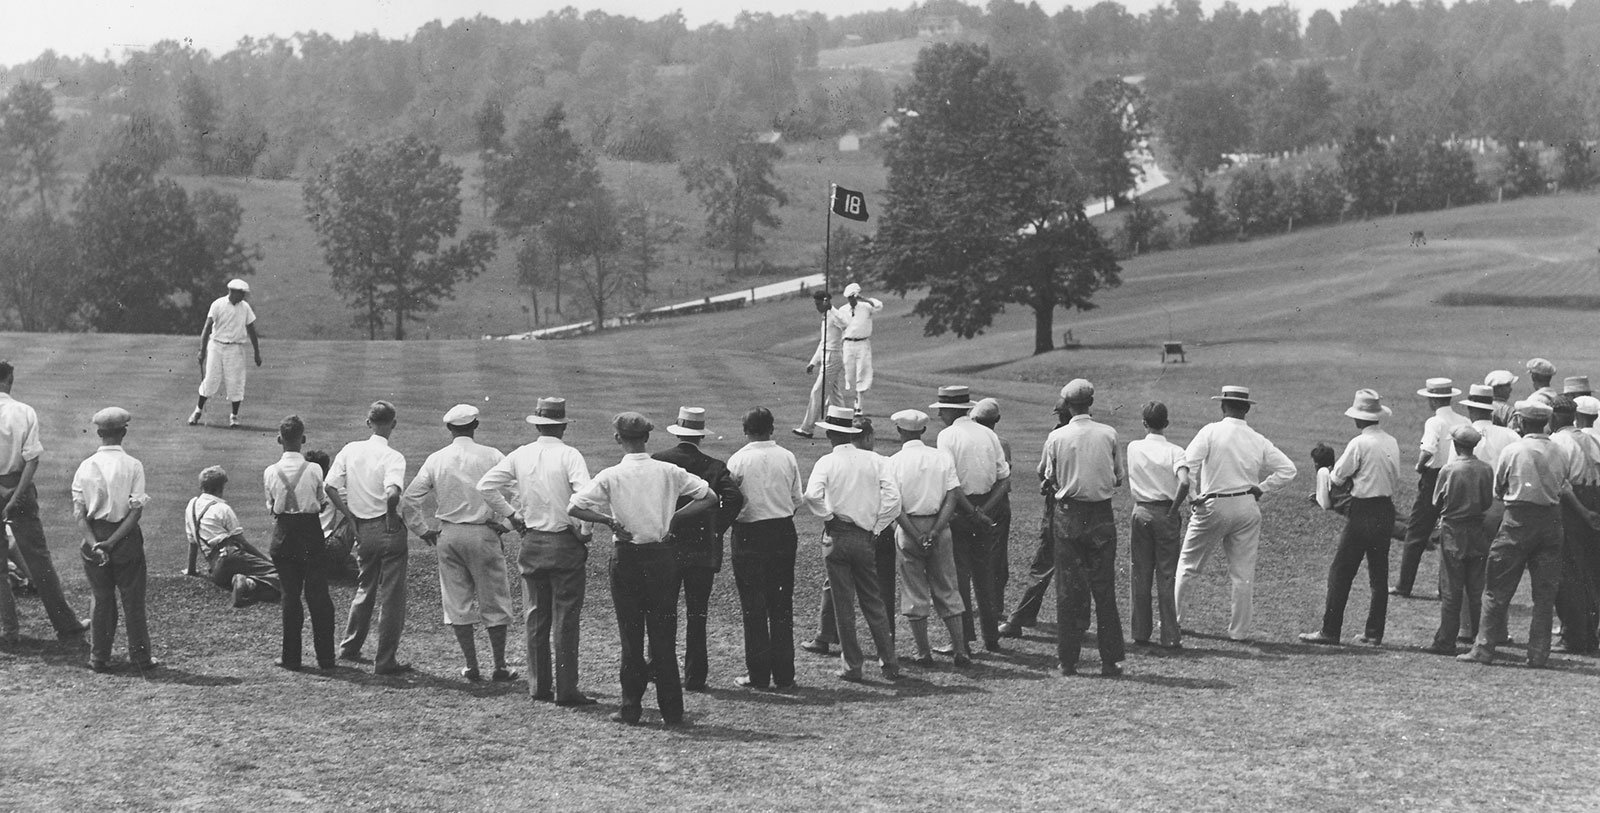 Historic Image of Donald Ross Golf Course 1917 at French Lick Springs Hotel, 1845, Member of Historic Hotels of America, in French Lick, Indiana, Golf